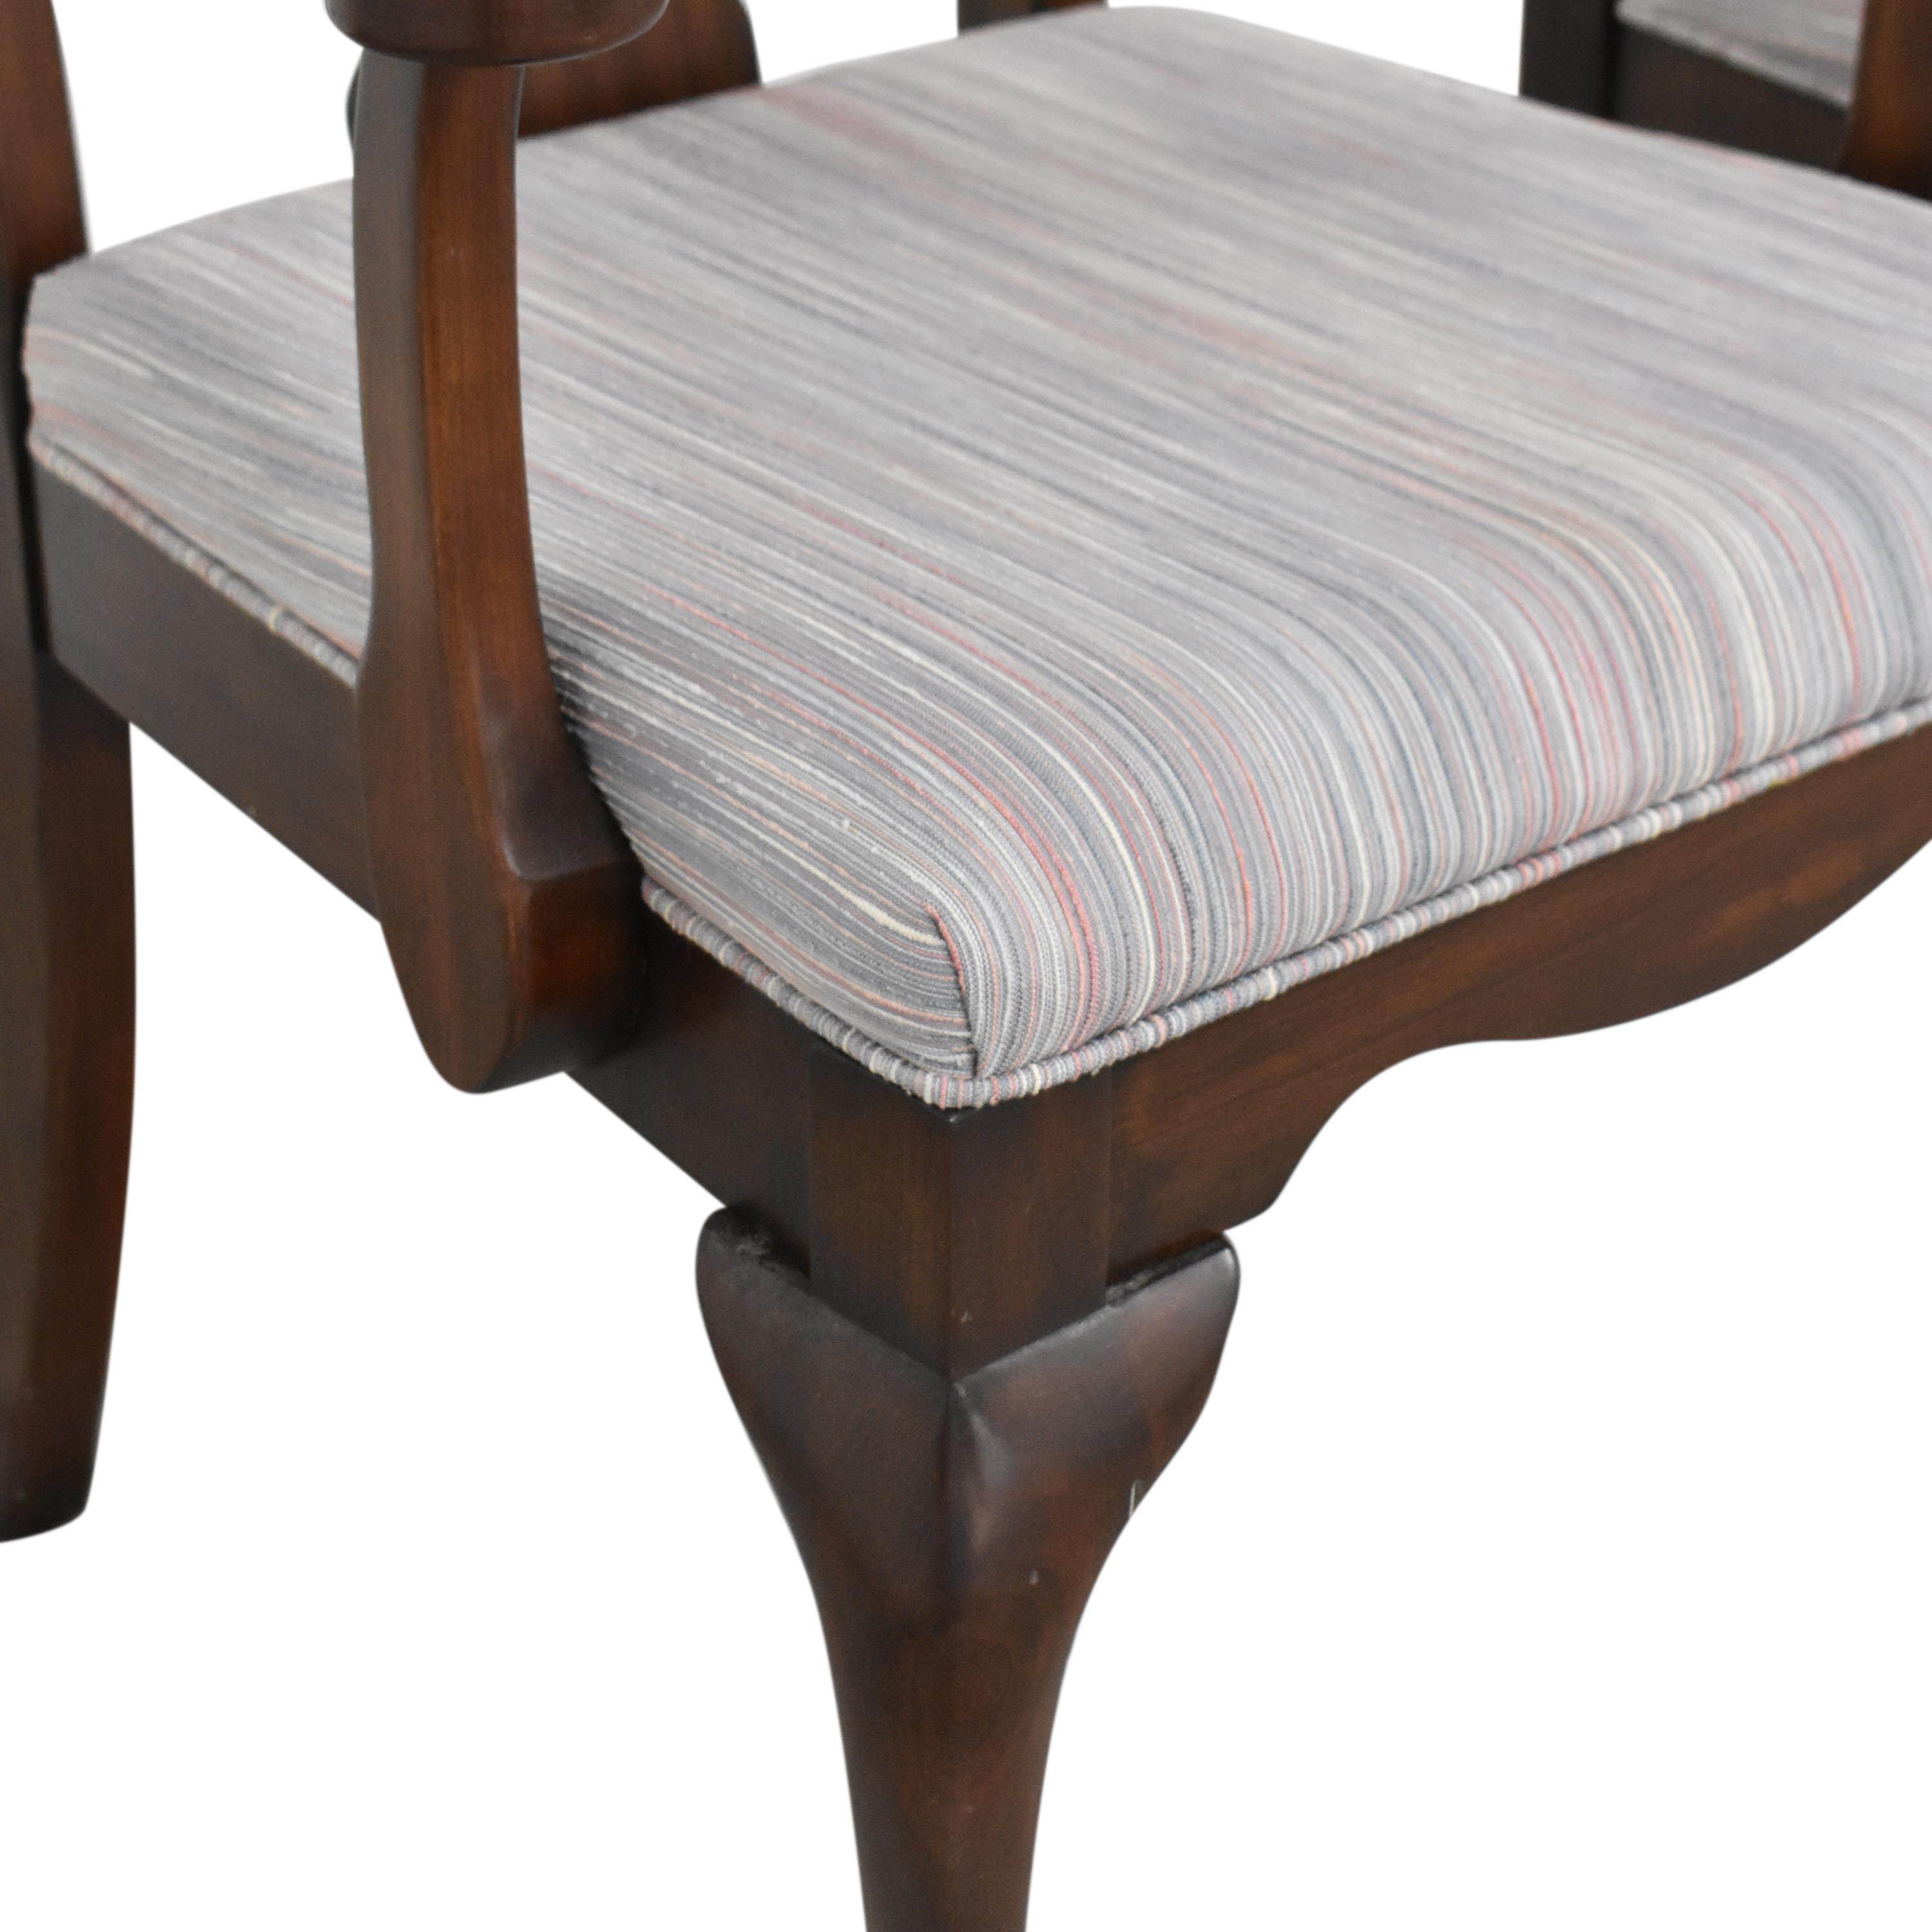 Harden Harden Upholstered Dining Chairs price